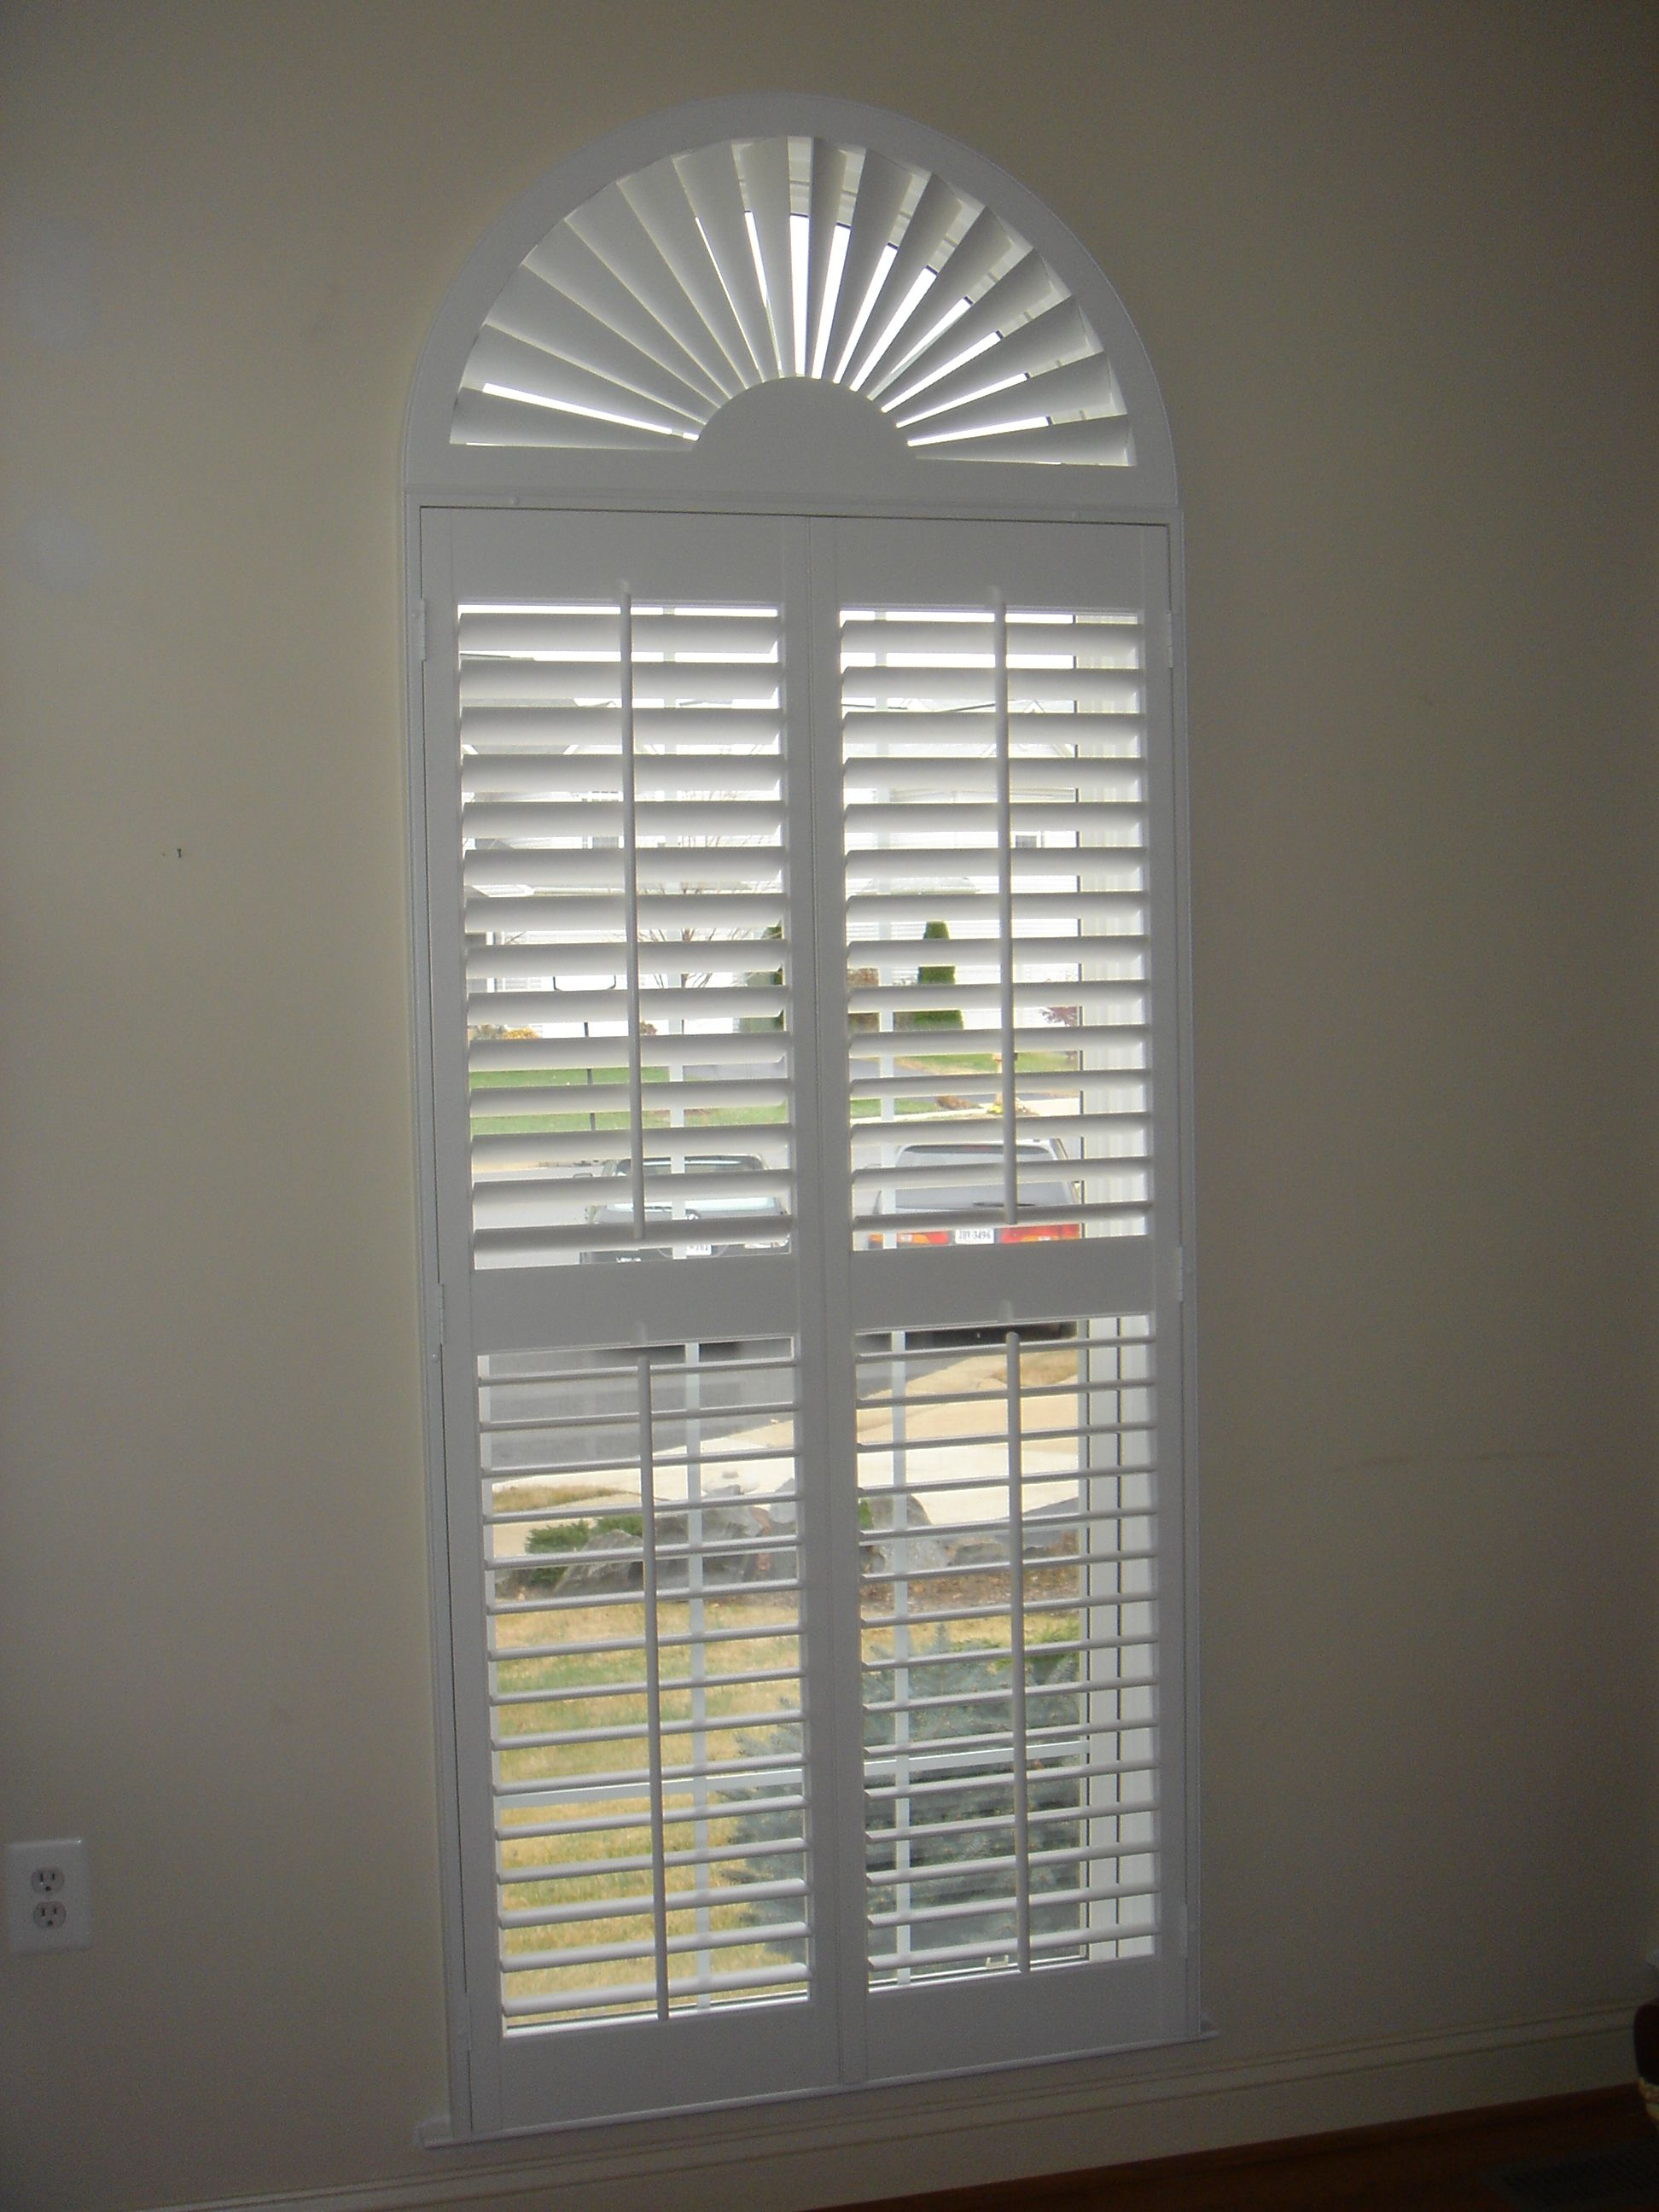 2 1 2 Interior Shutters With A Sunburst Shutters By The Louver